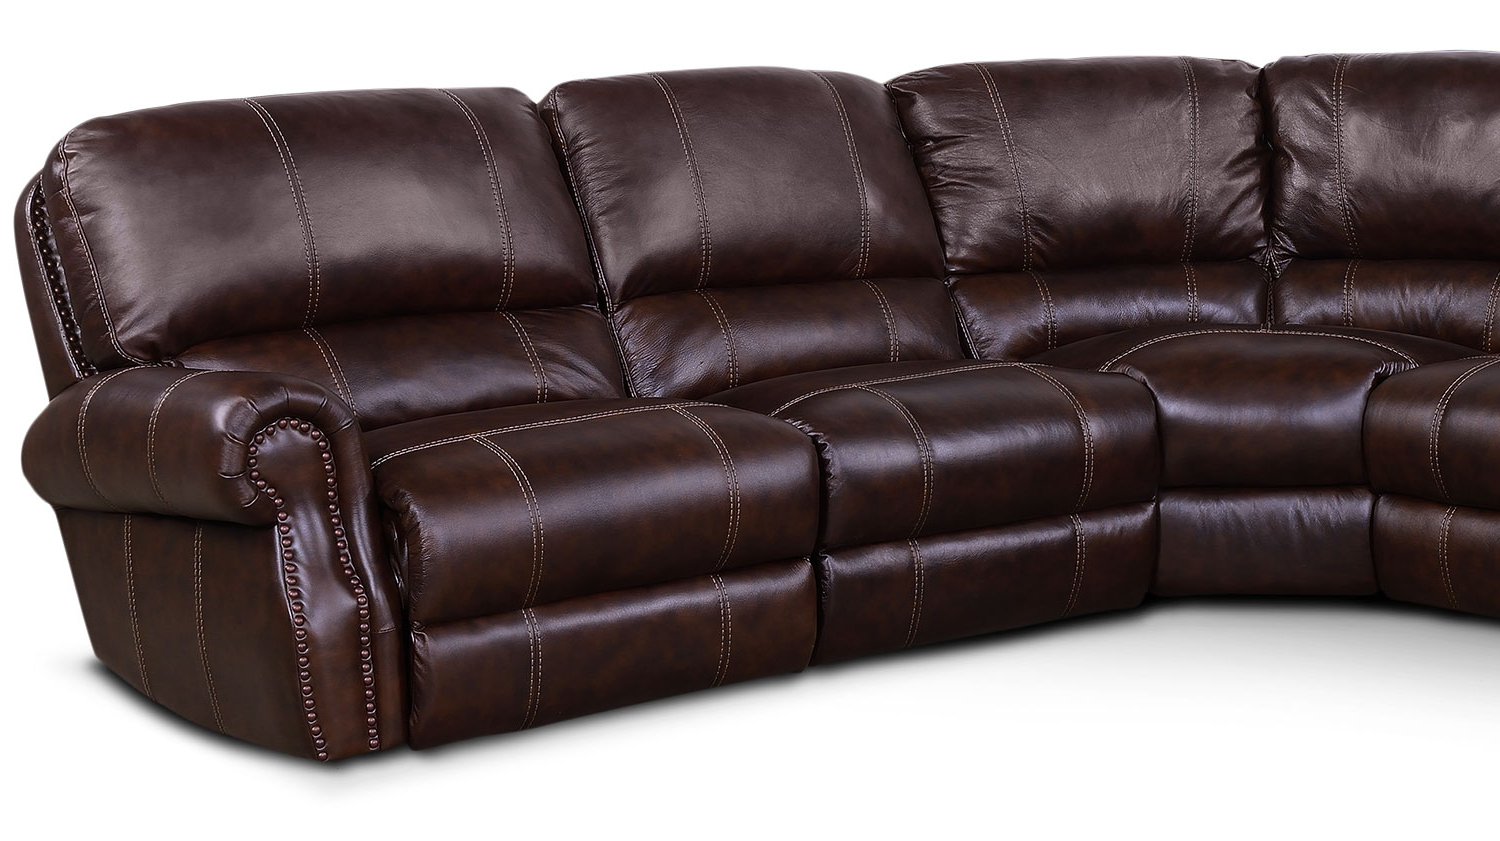 Latest Norfolk Chocolate 6 Piece Sectionals With Raf Chaise With Regard To Dartmouth 6 Piece Power Reclining Sectional With 2 Reclining Seats (View 3 of 20)